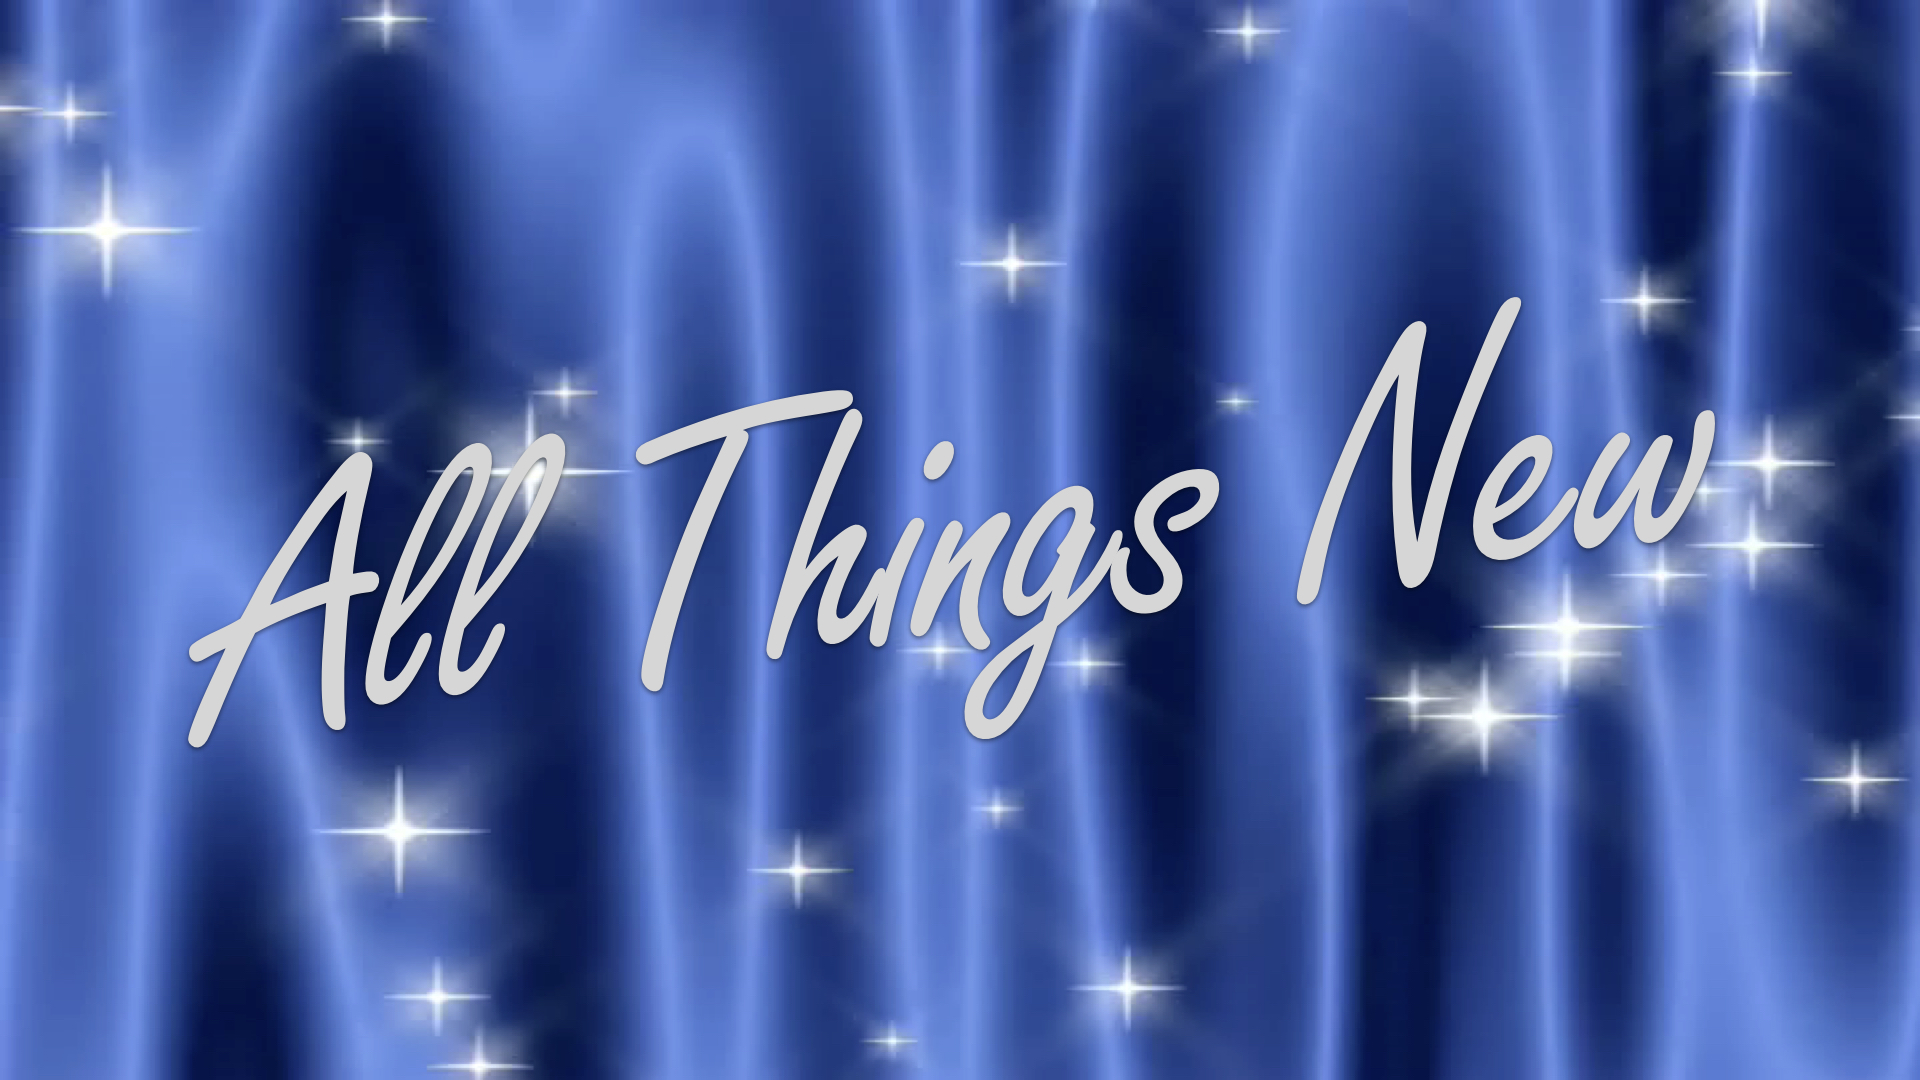 12-31-17 All Things New